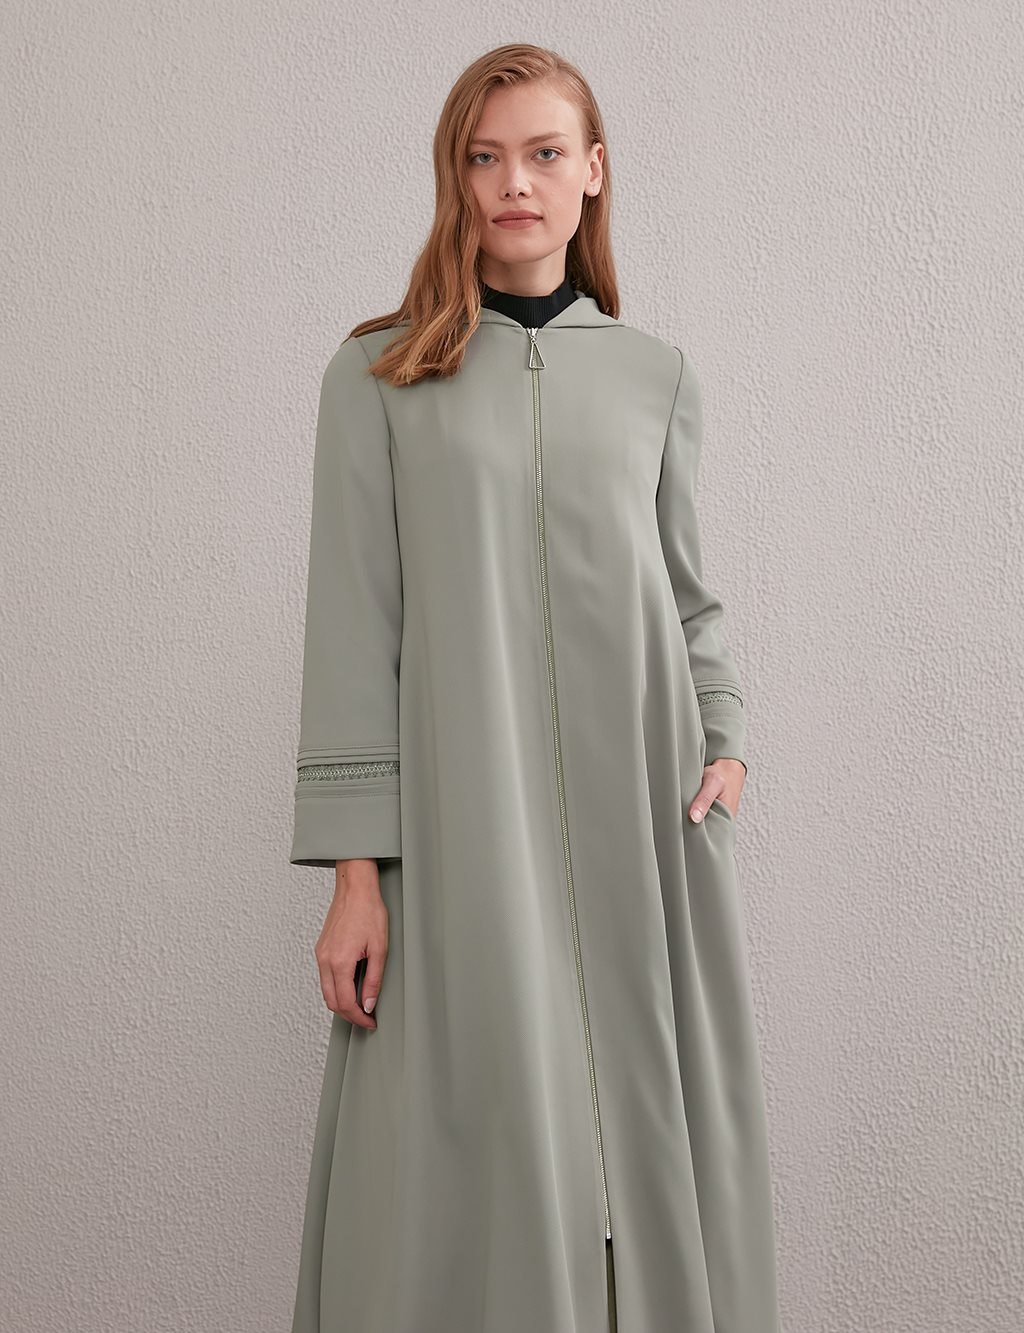 Long Trenchcoat With Hood A20 25016 Water Green